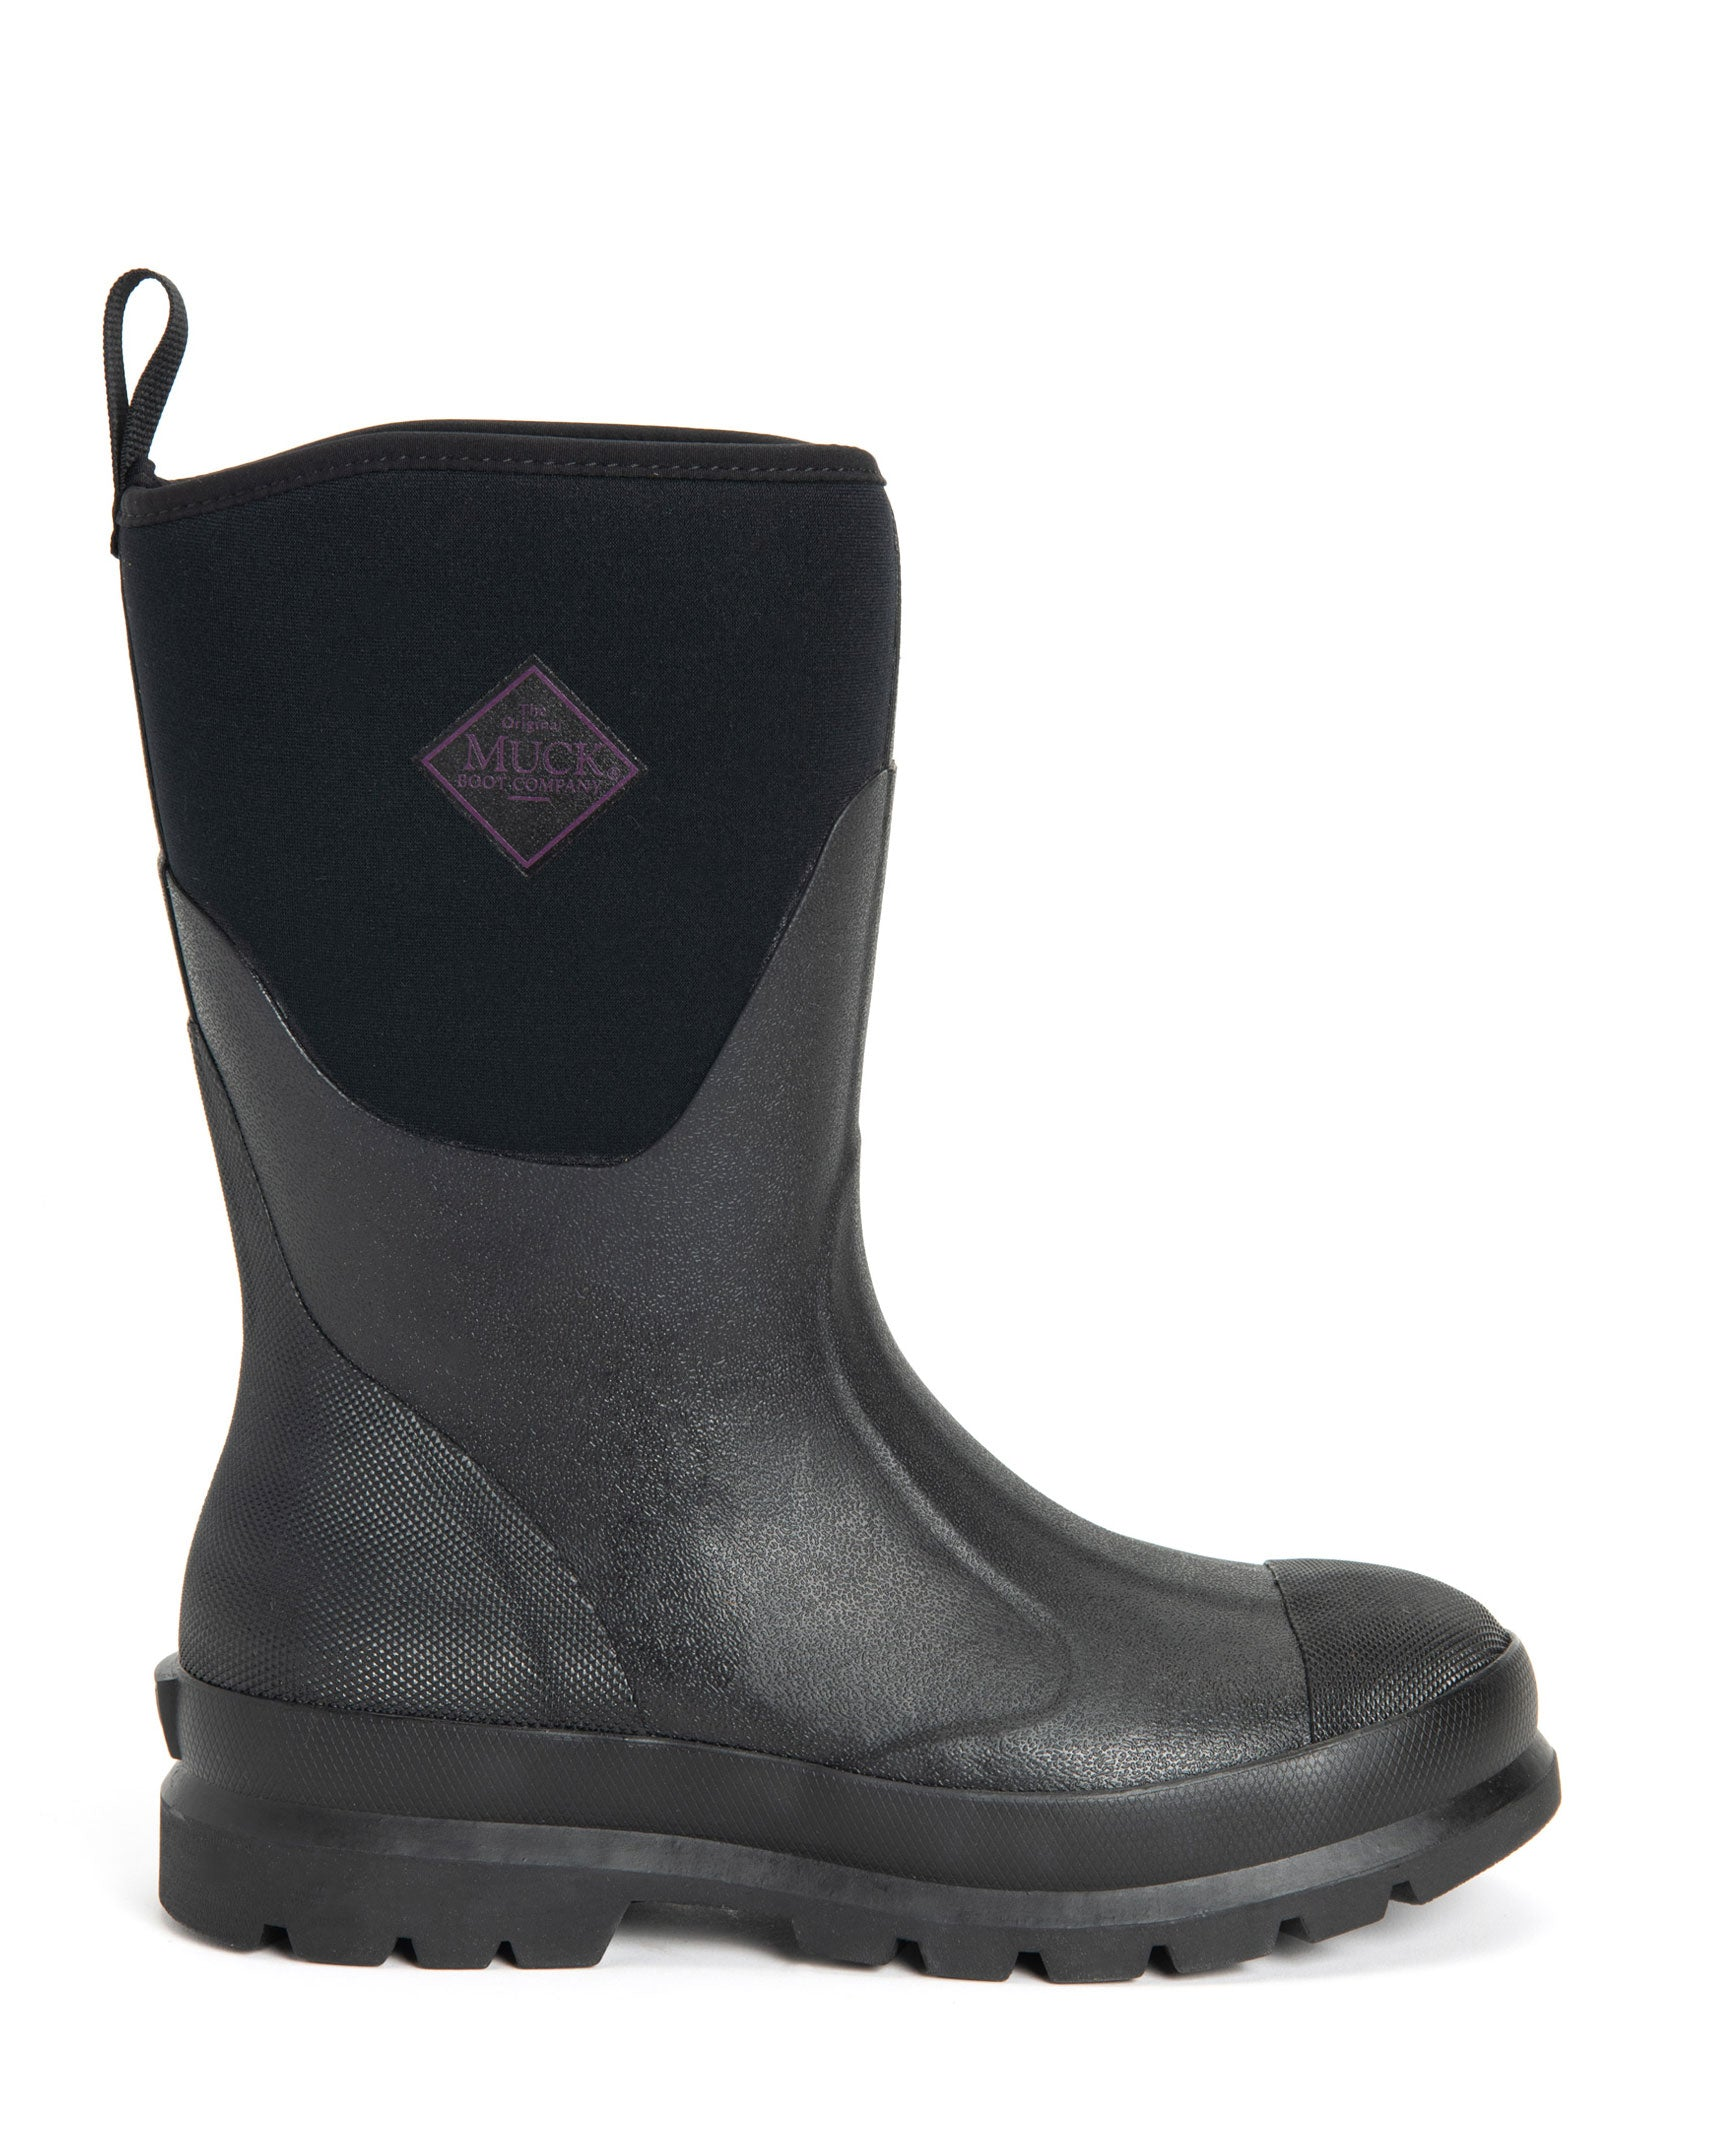 Womens Chore Mid Gumboots